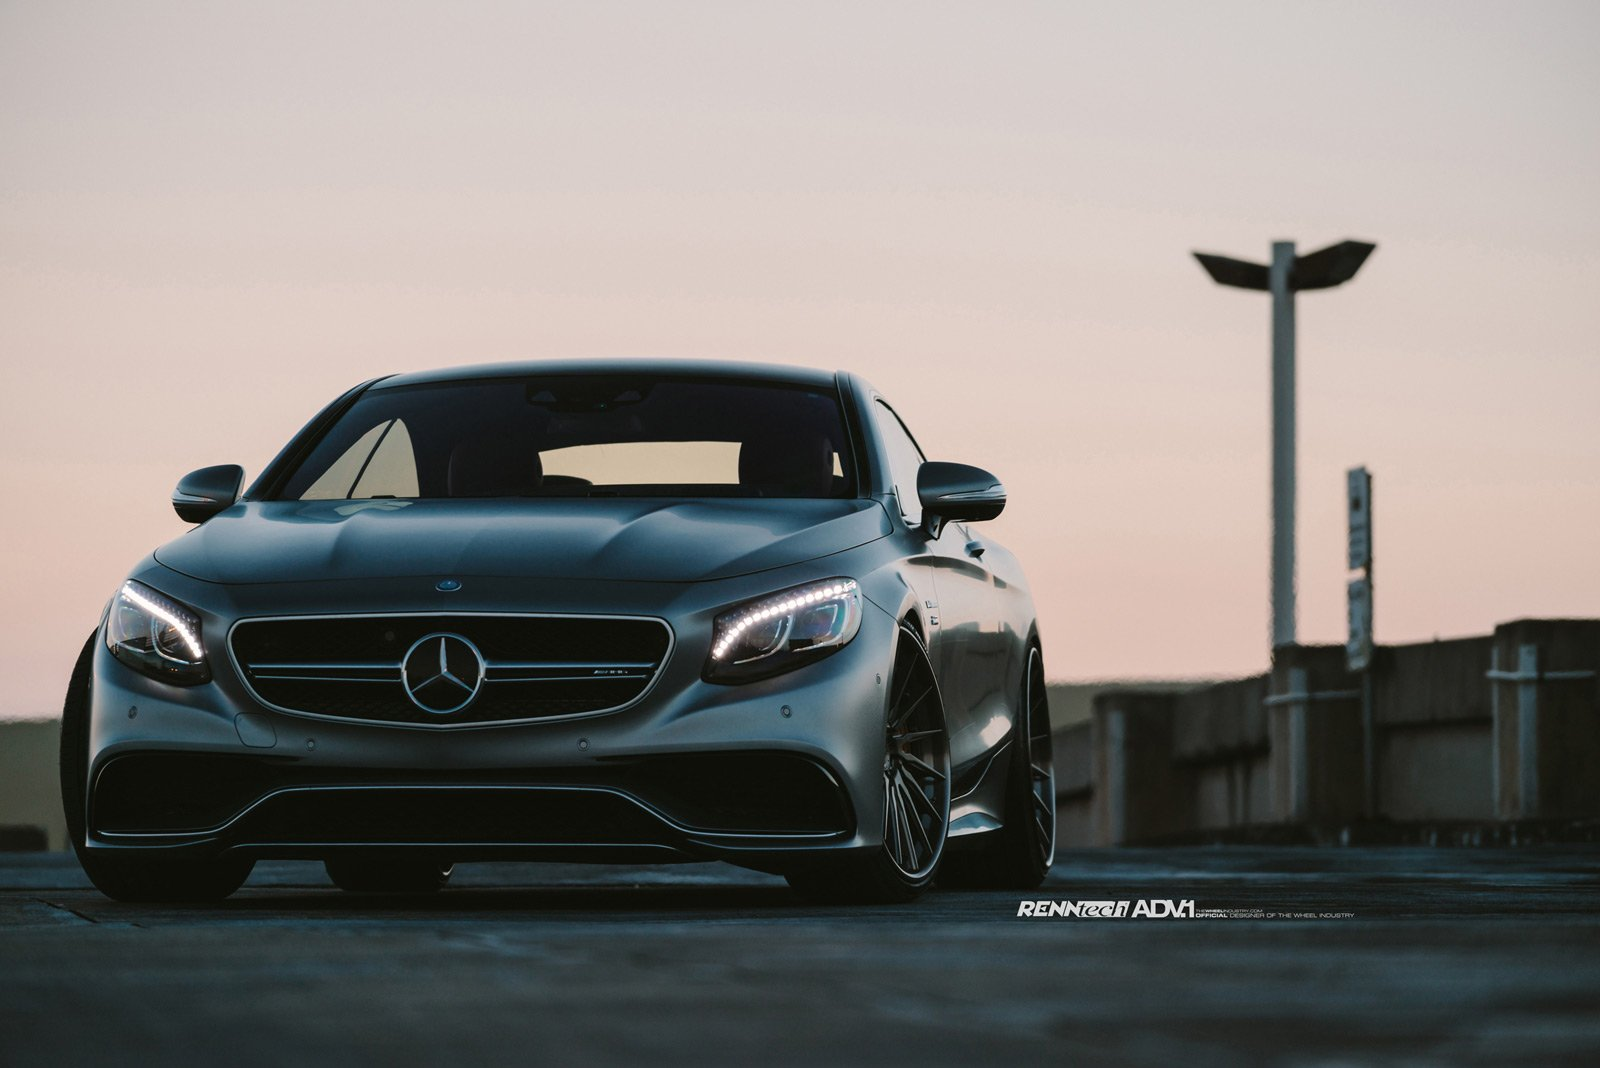 S 63 Amg Wallpaper: 2015 Adv1 Wheels Tuning Cars MERCEDES S63 AMG COUPE